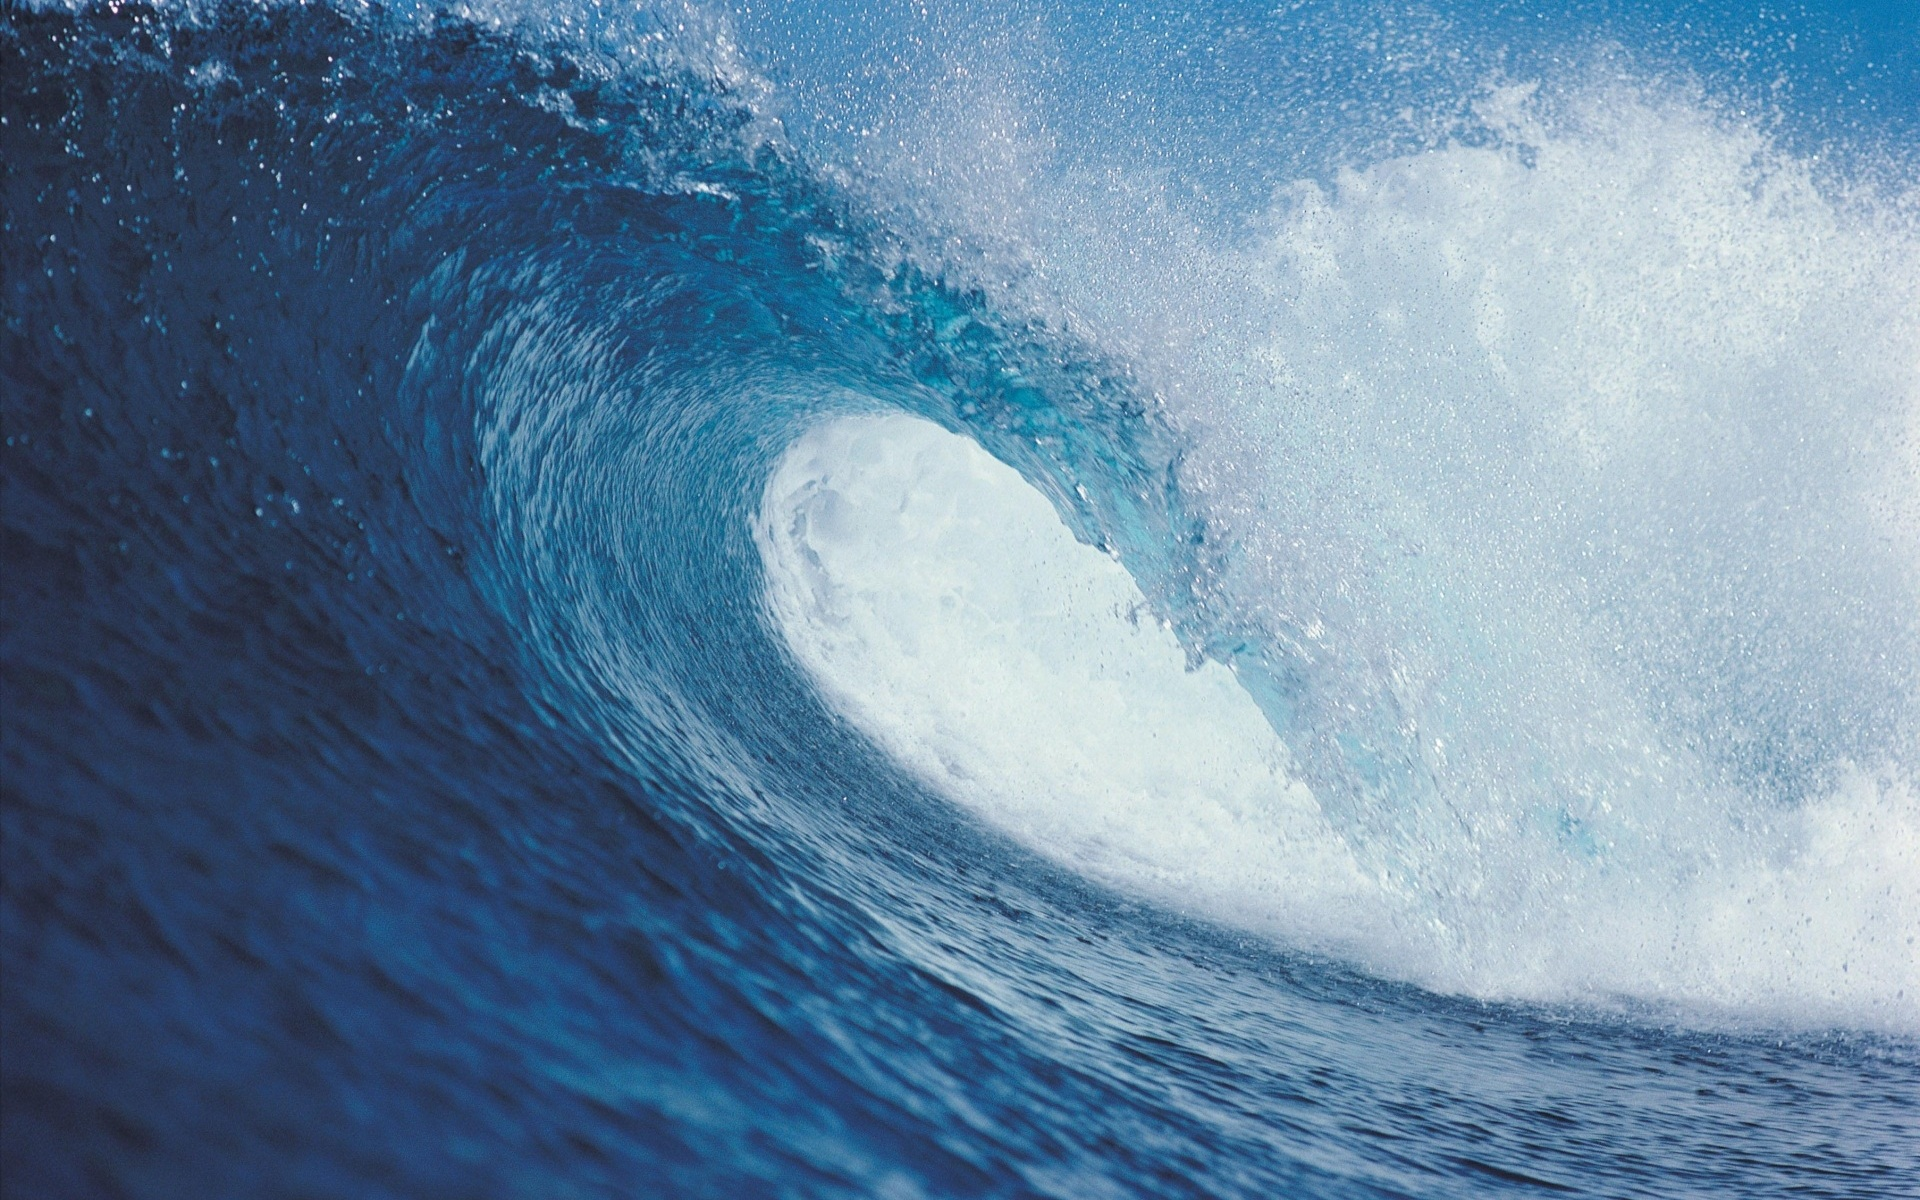 Wave Wallpaper 12055 on Ocean Animals